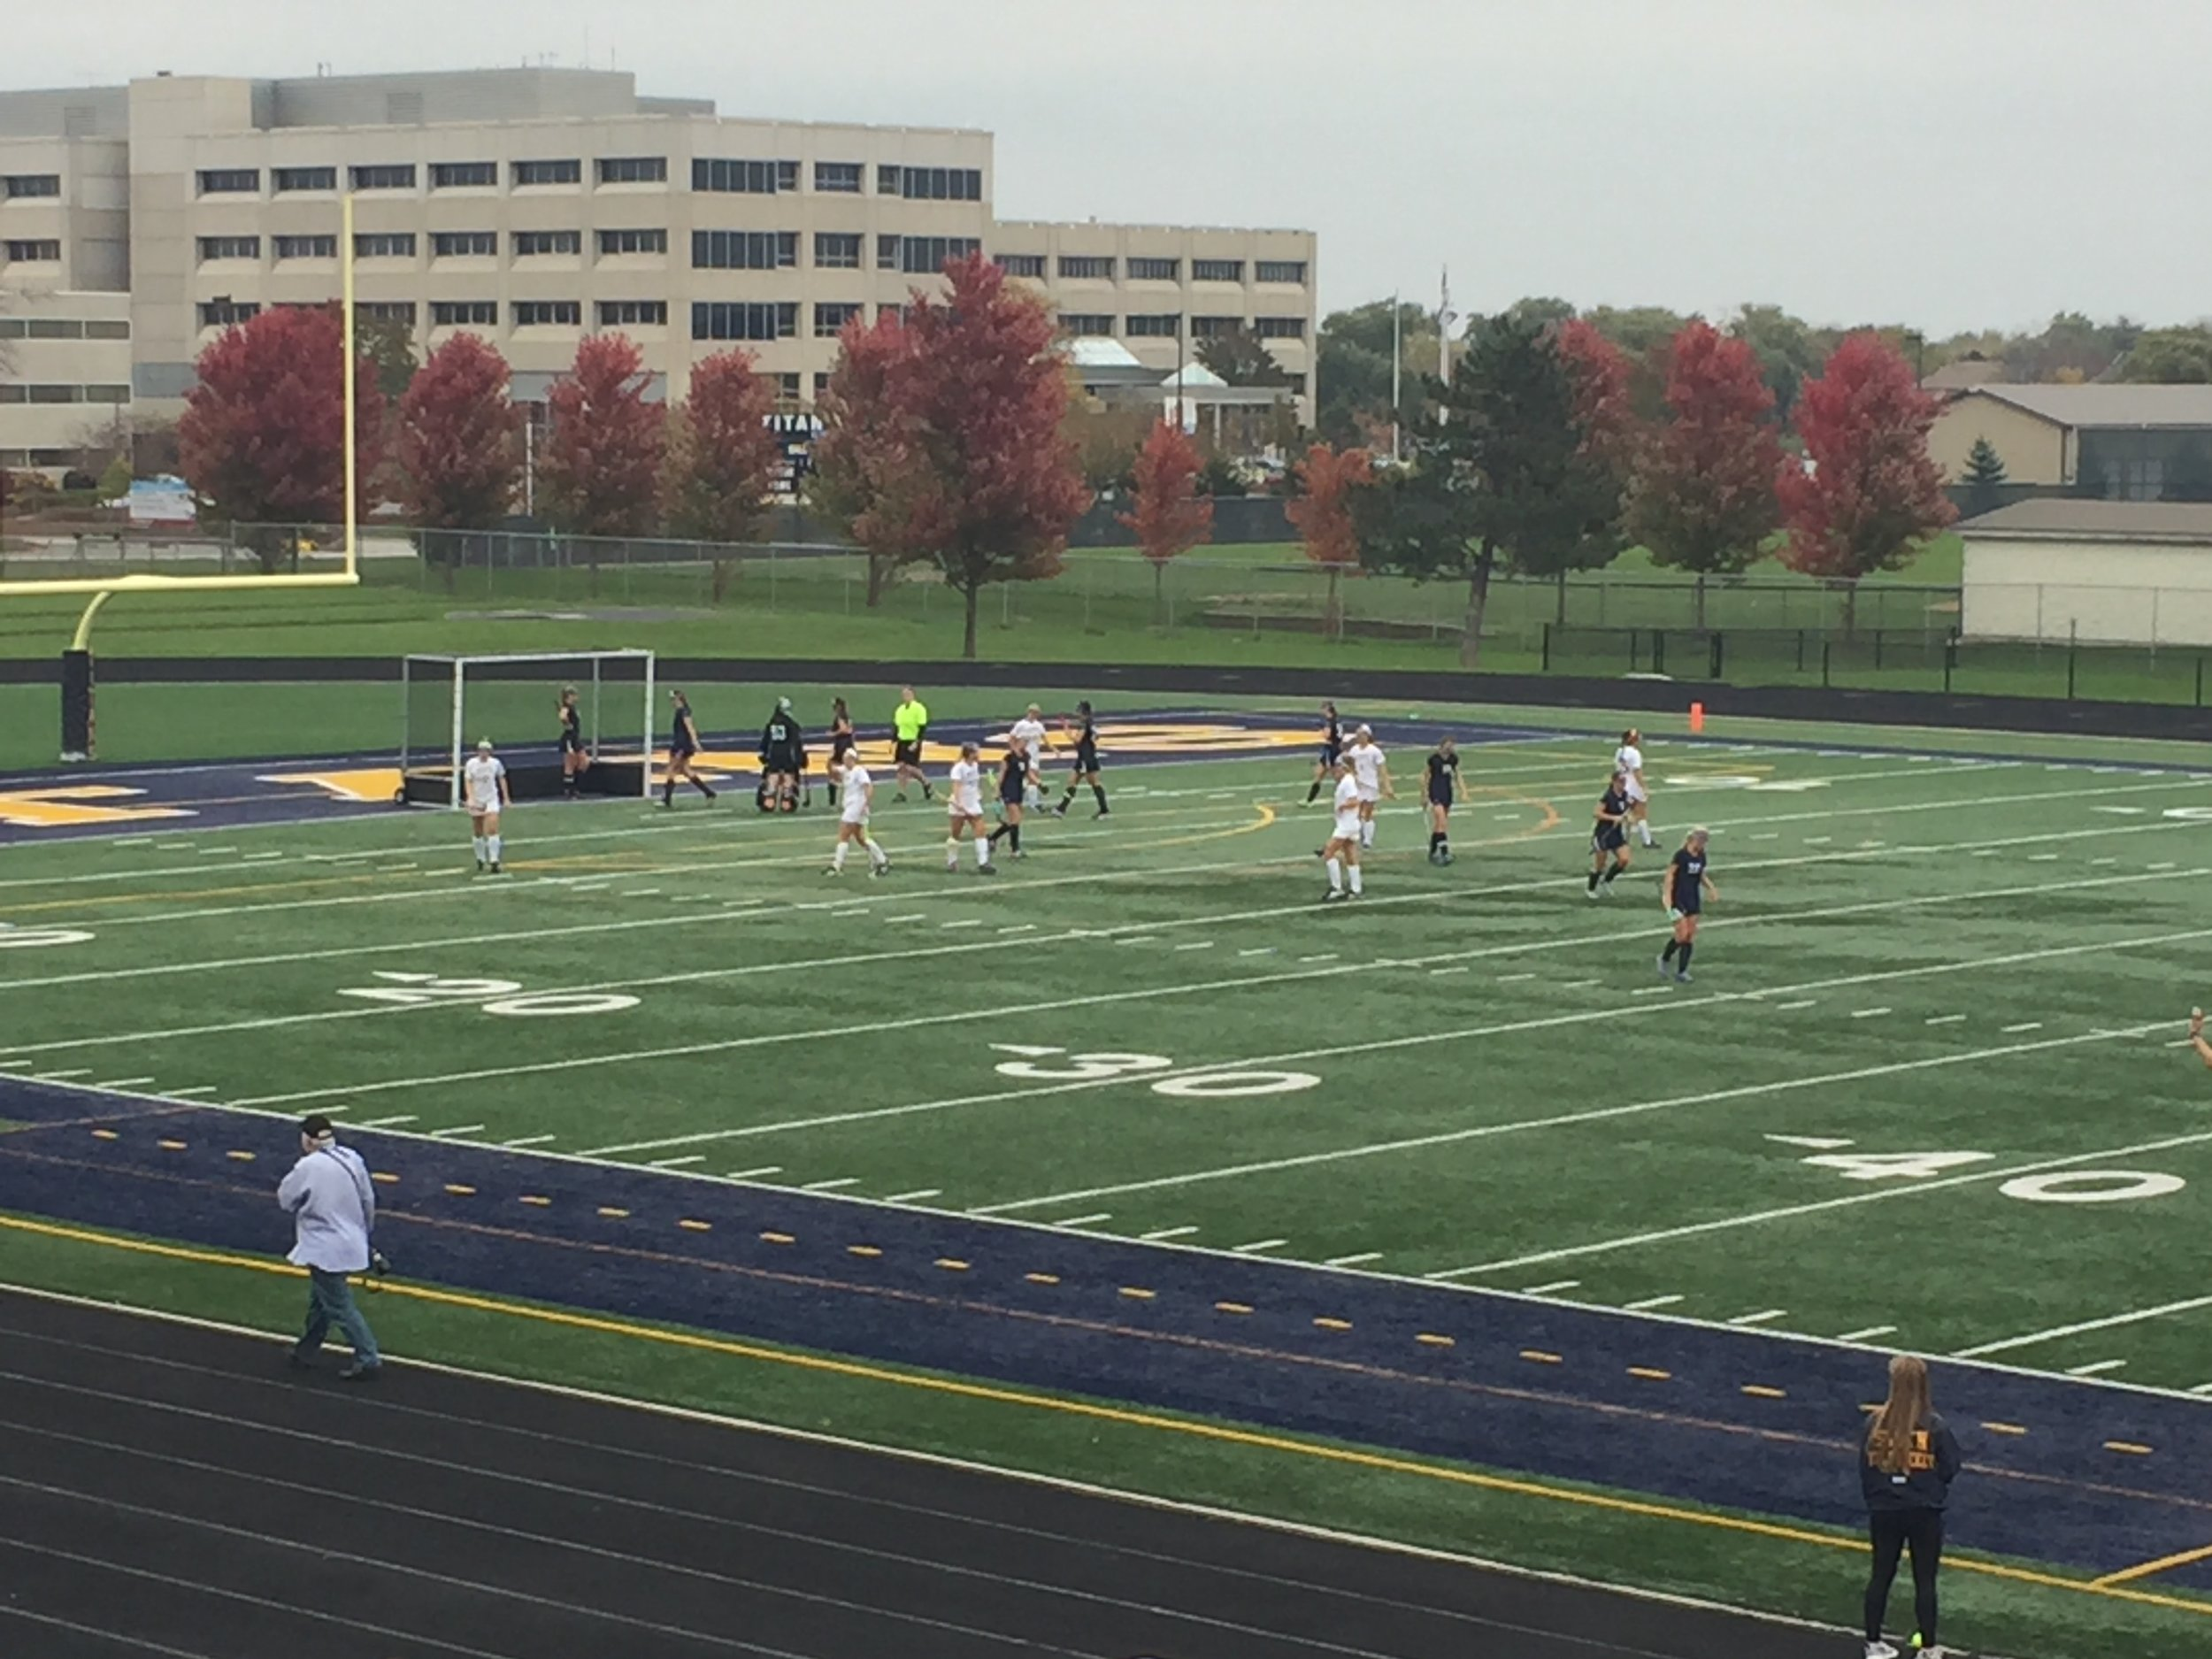 2016 State Championships at Glenbrook South High School